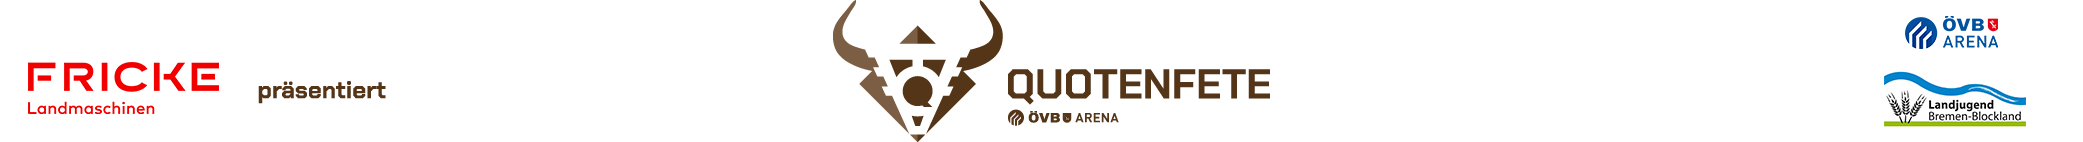 logo_quotenfete-all-1